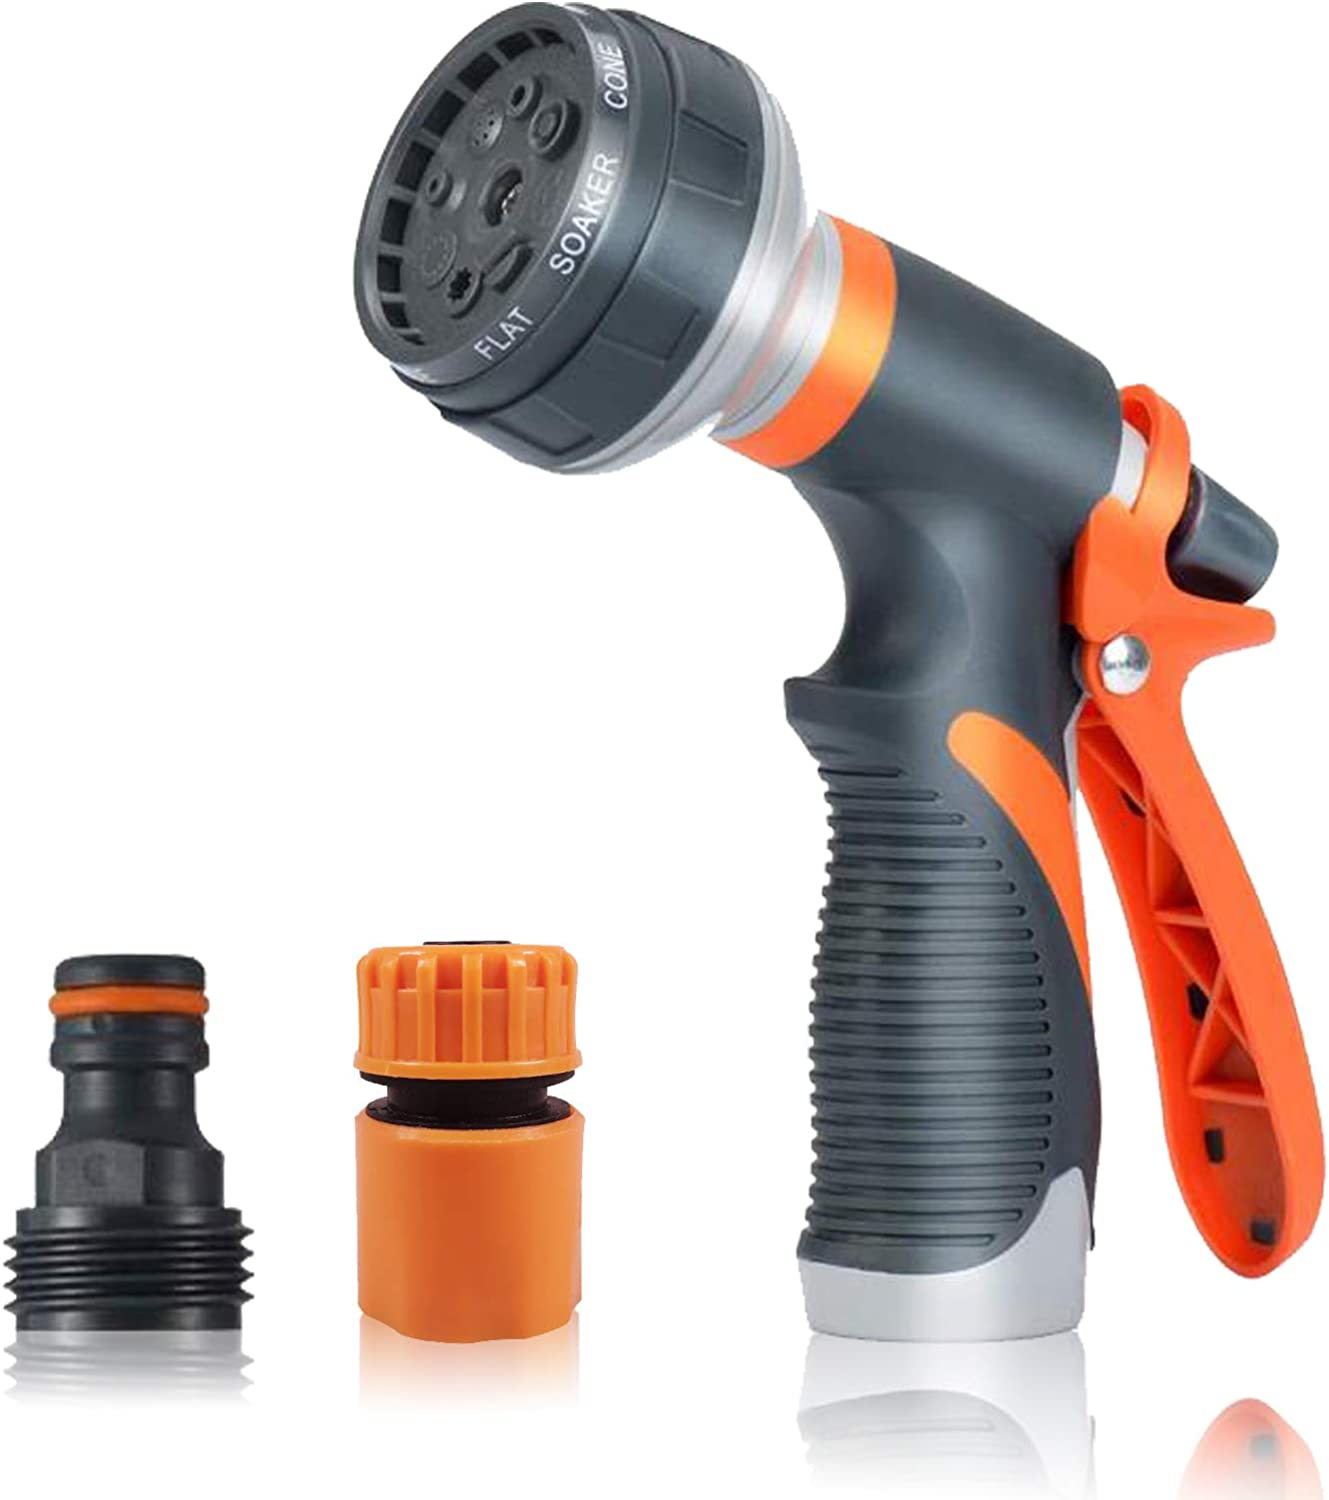 Garden Hose Nozzle,Hose Spray Nozzle,Water Hose Nozzle with 8 Adjustable Watering Patterns,Heavy Duty Hose Nozzle for Watering Plants,Cleaning,Car Wash and Showering Pets